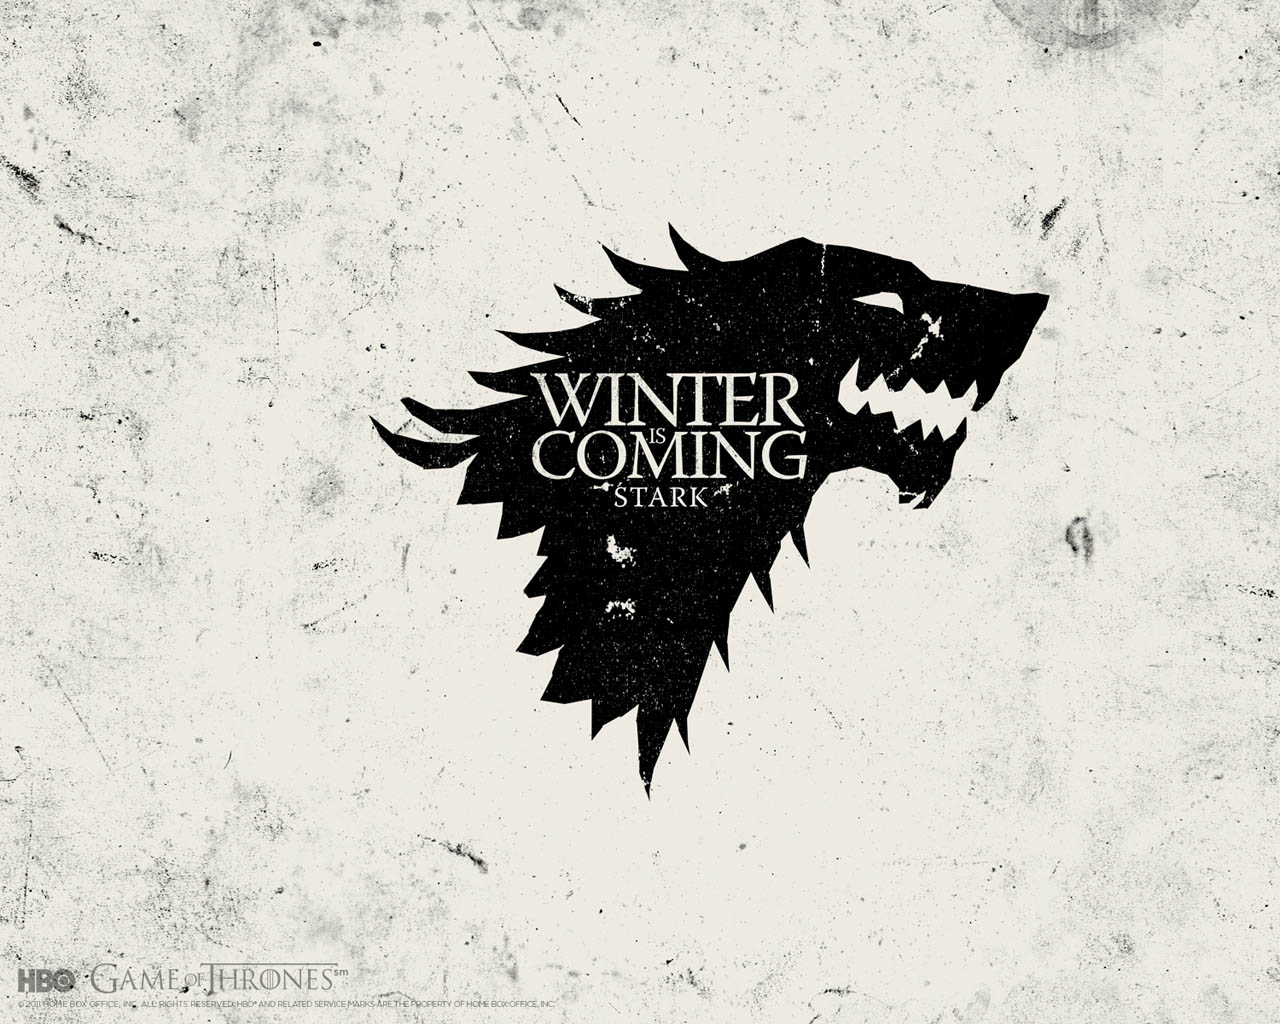 Game of Thrones Wallpaper 1280x1024 Wallpapers 1280x1024 Wallpapers 1280x1024